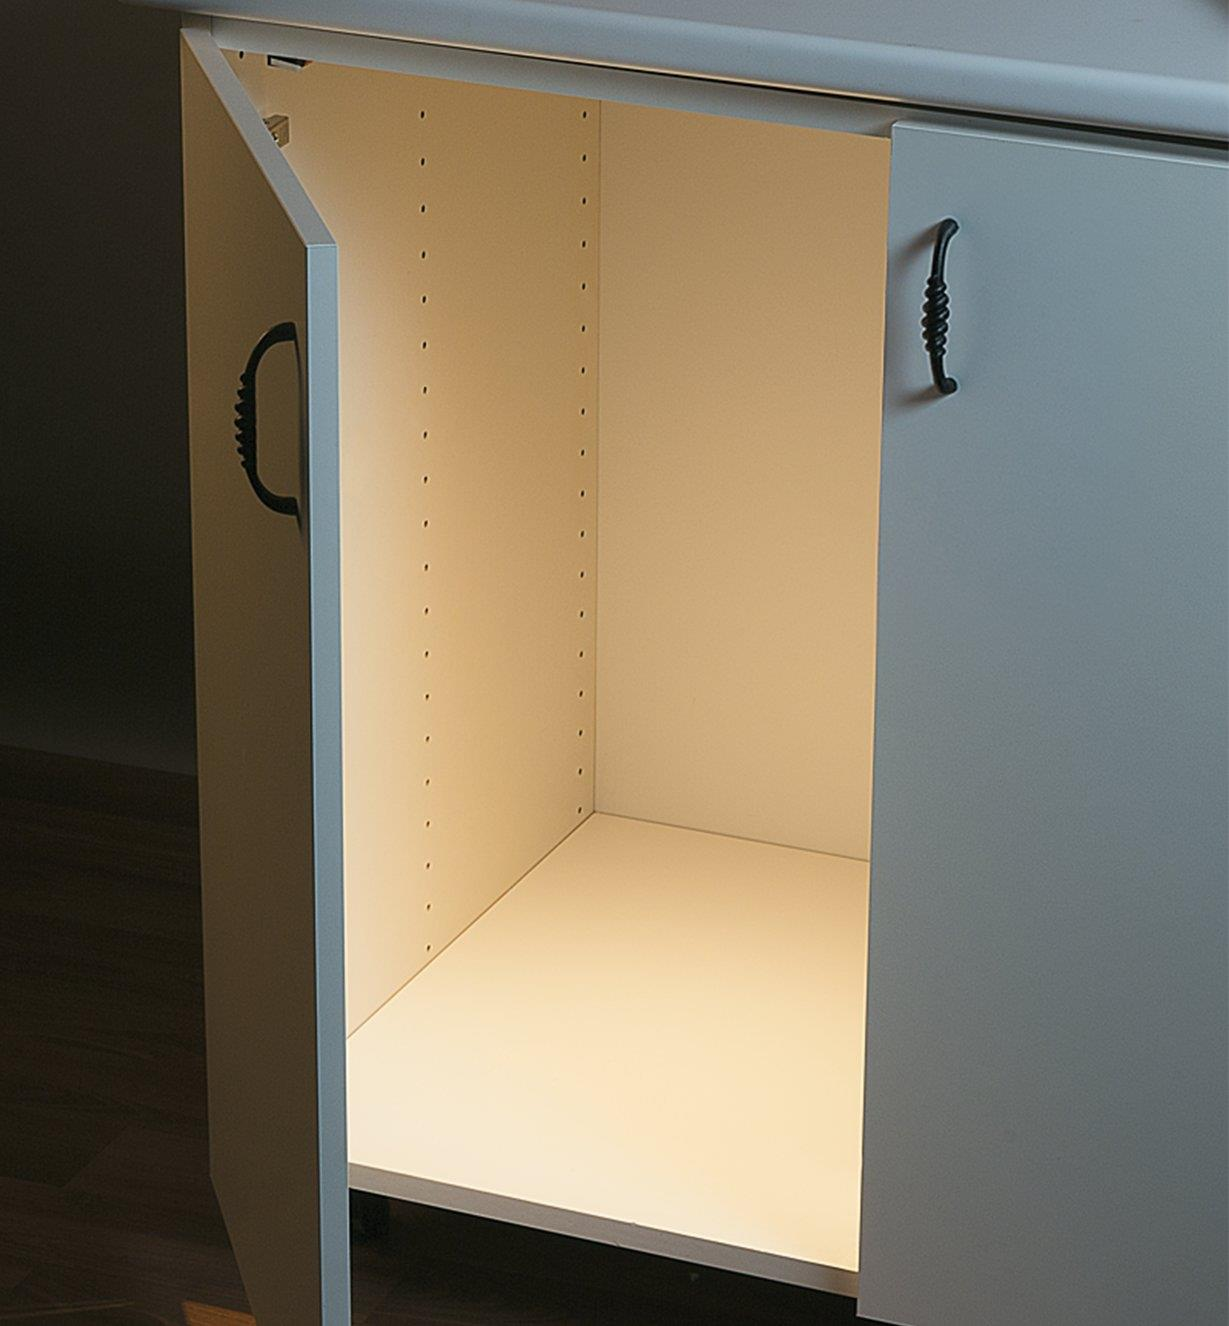 Open cabinet with light shining inside